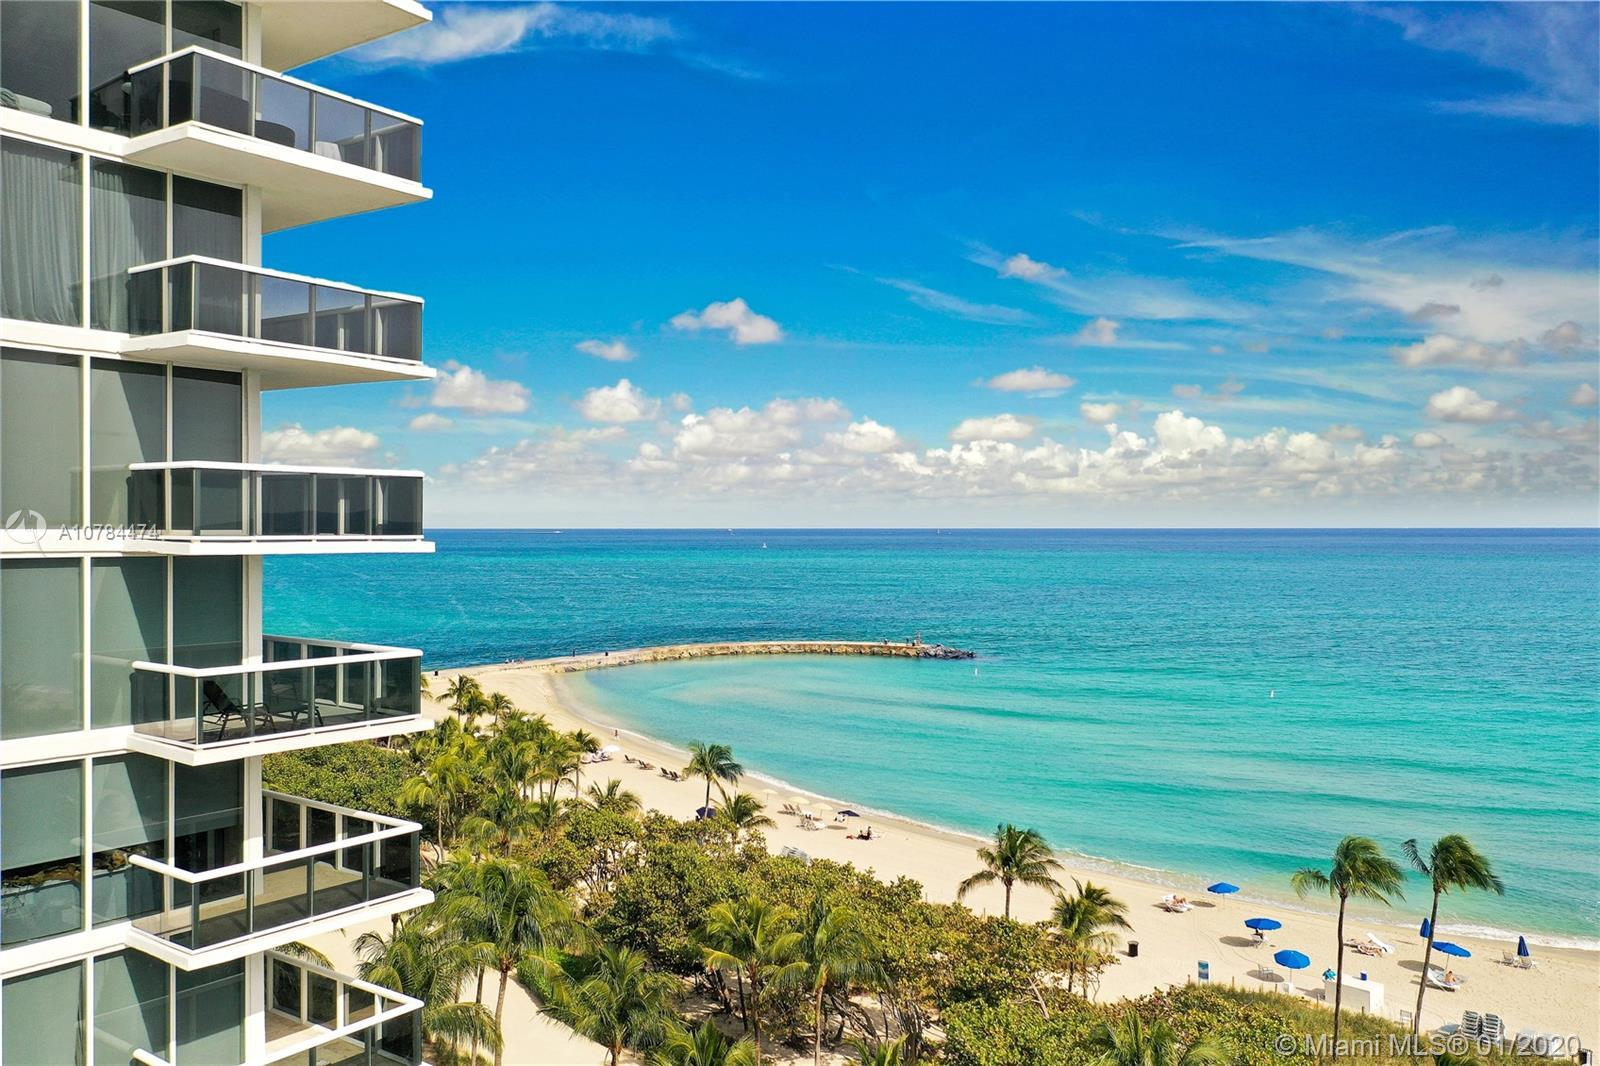 Lower penthouse unit with unobstructed Ocean views from every room! Open concept Italian kitchen wit